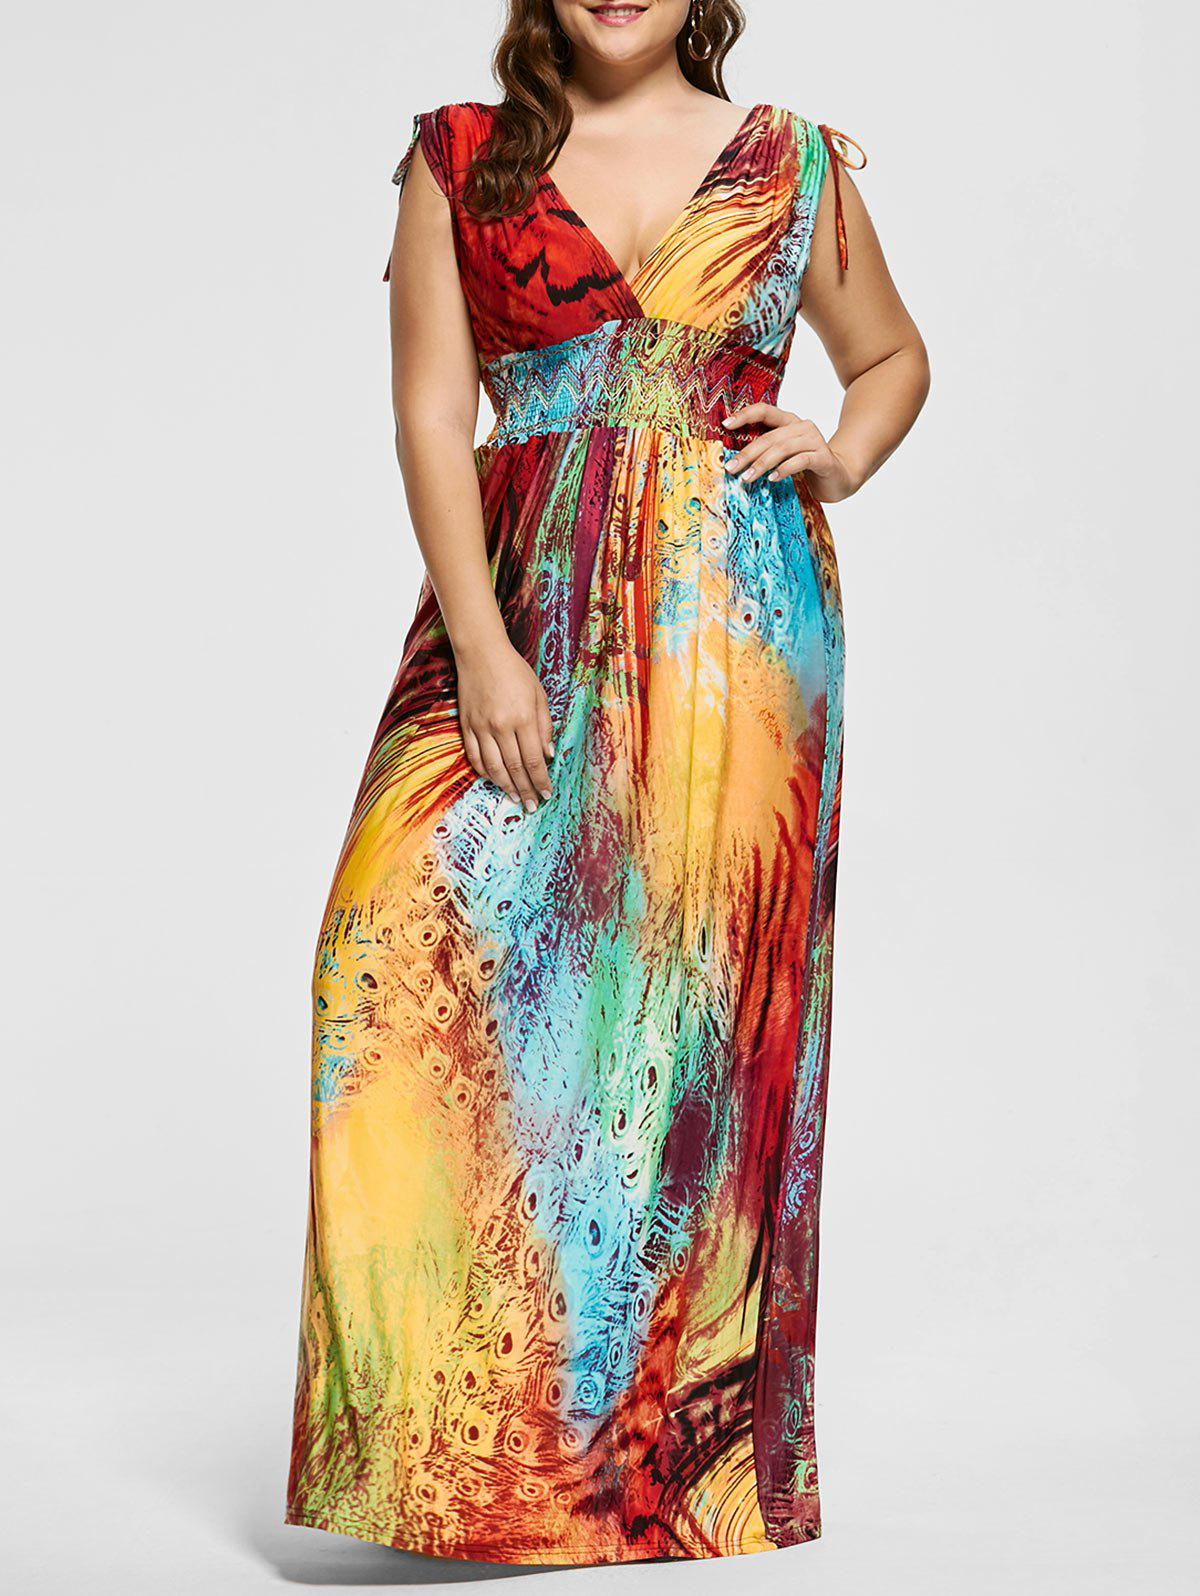 Hot Floor Length Plunging Neck Printed Plus Size Dress